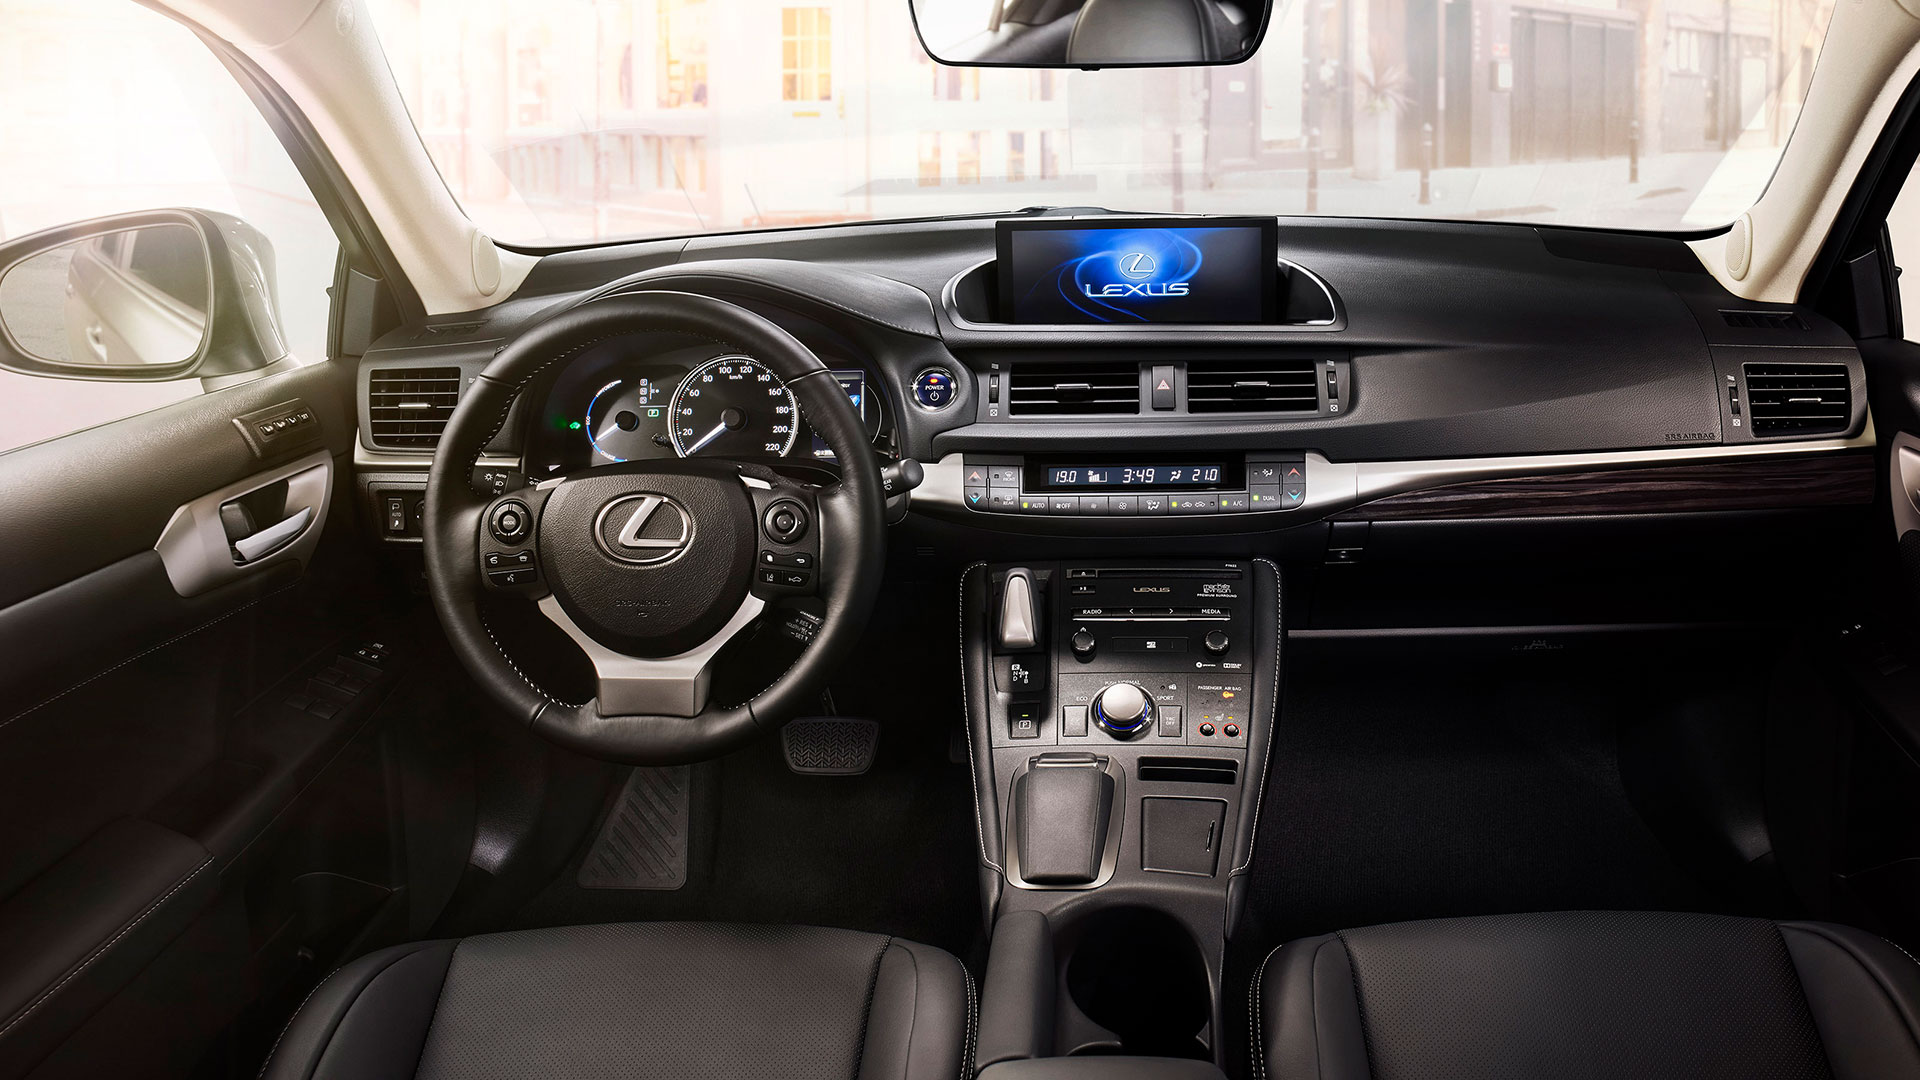 2018 lexus ct 200h my18 gallery 007 interior